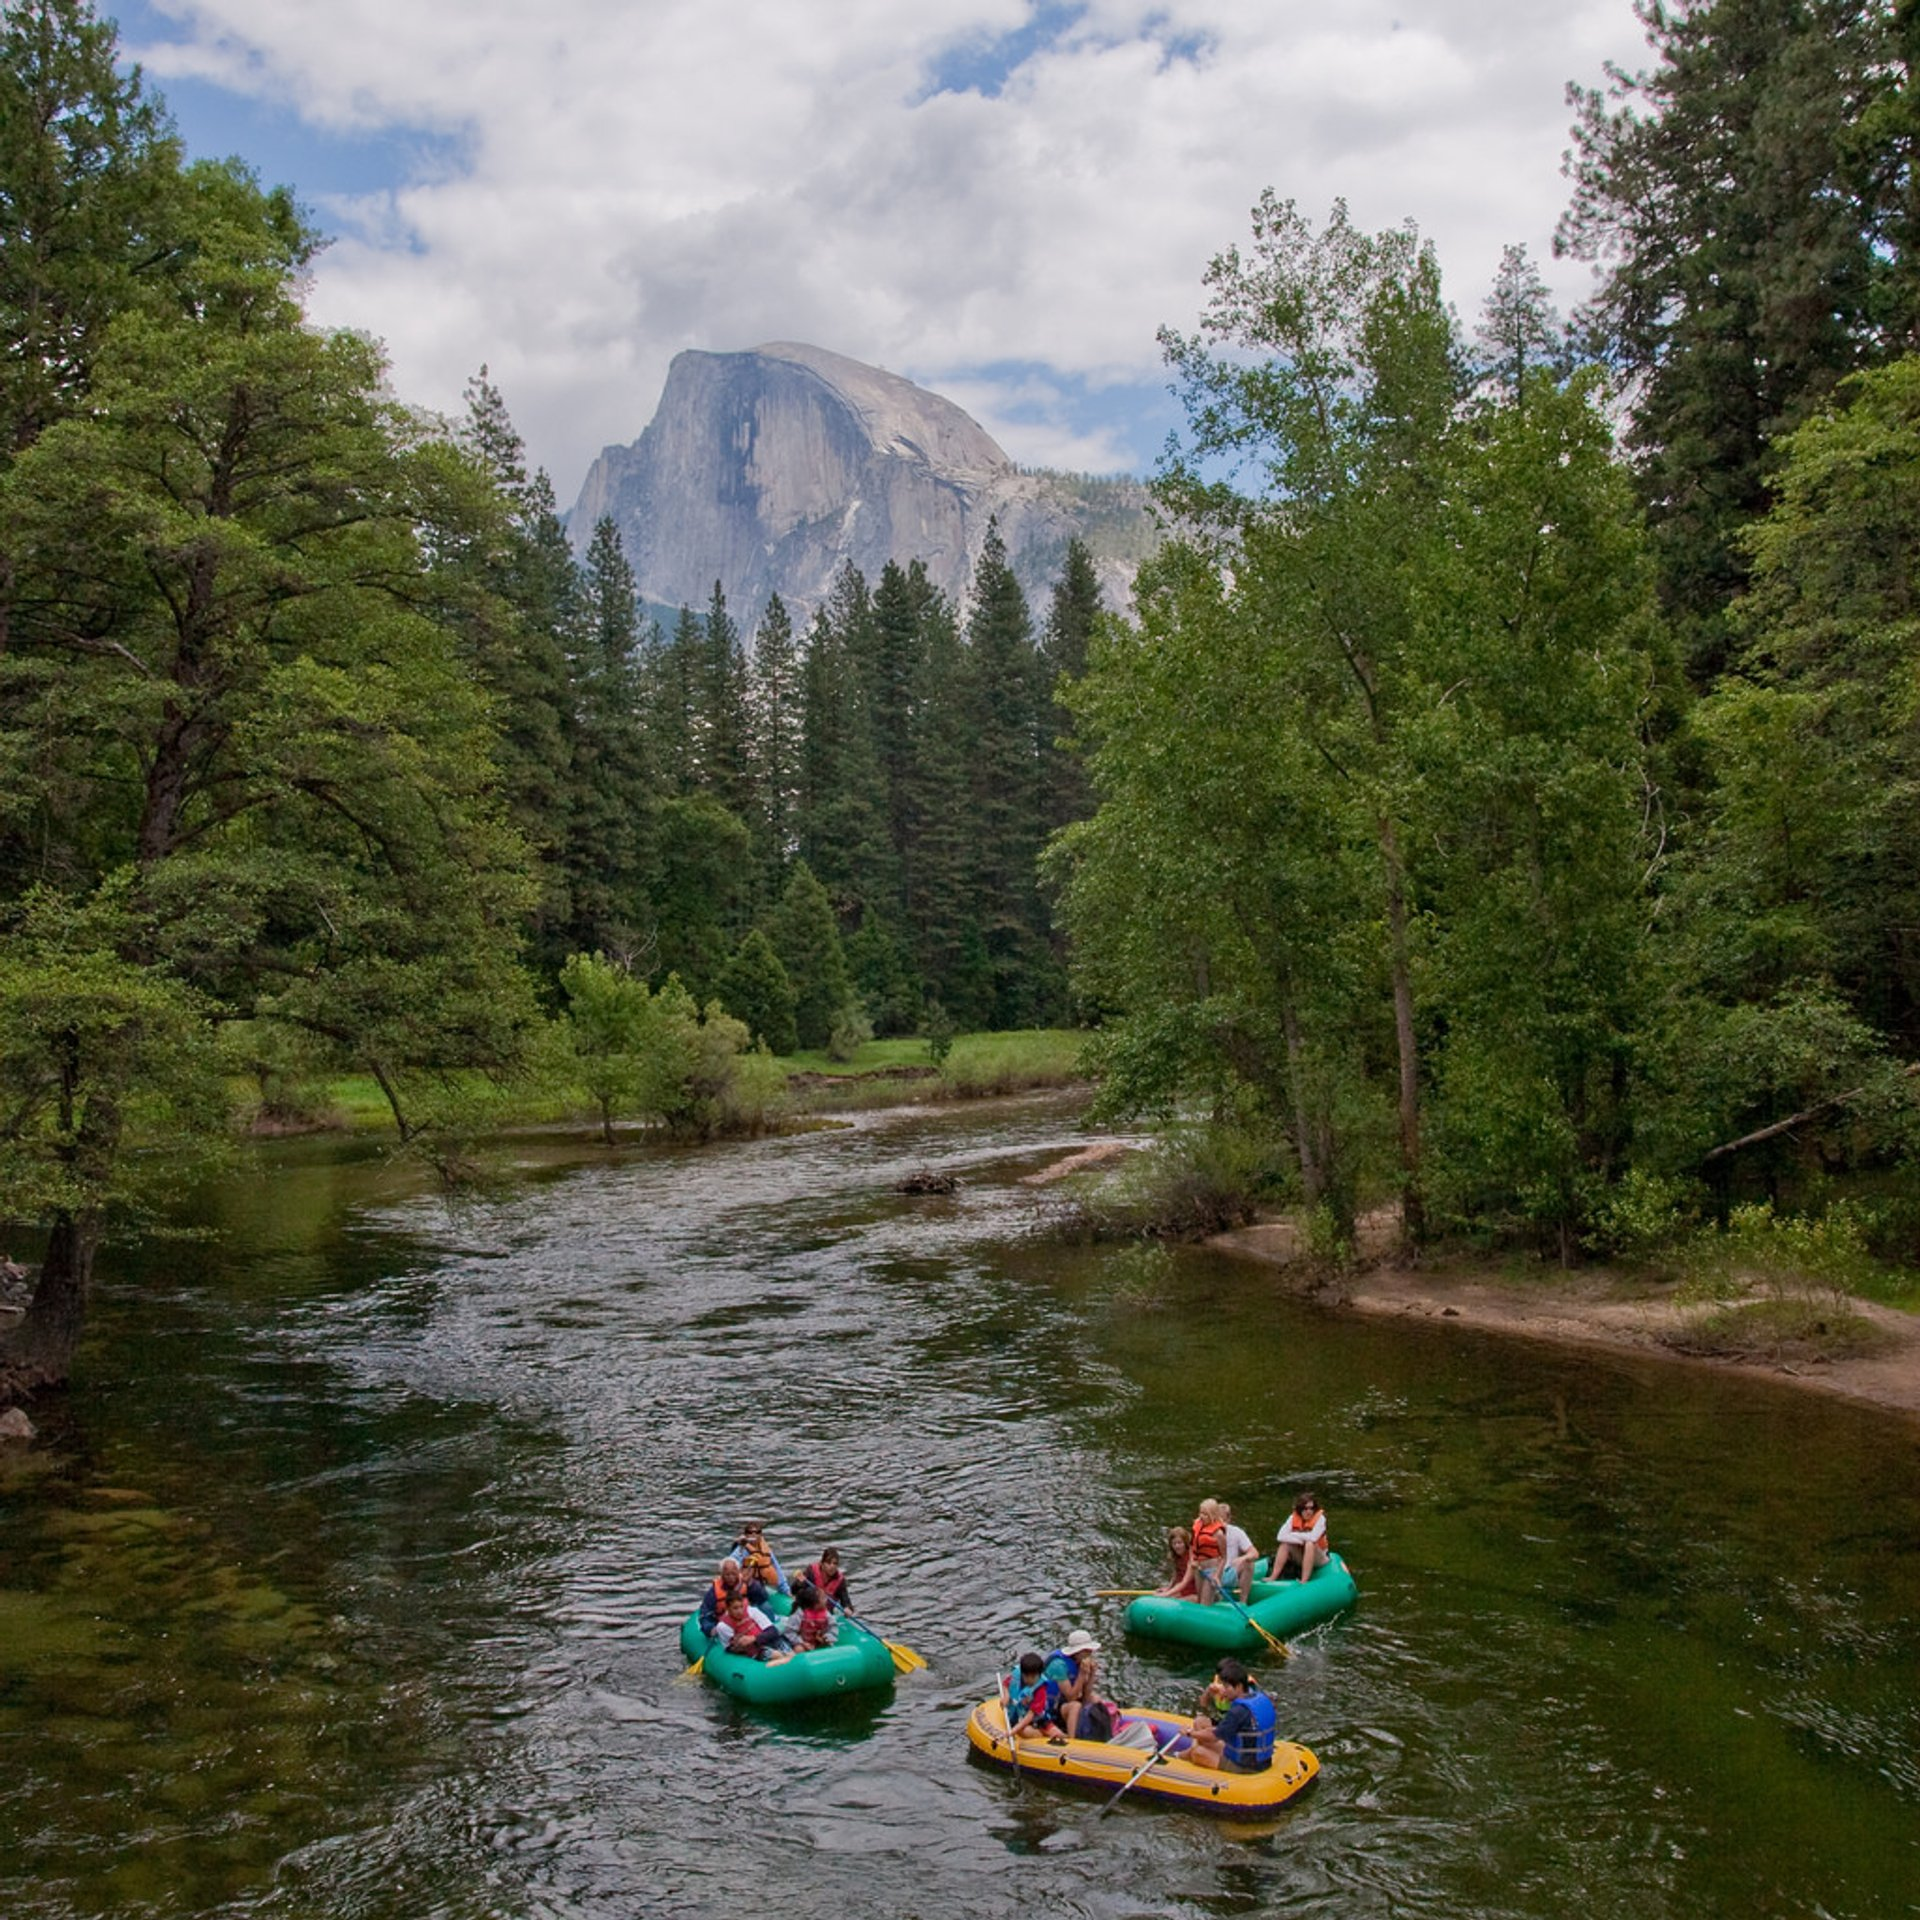 Rafting Along the Merced River in Yosemite - Best Season 2020